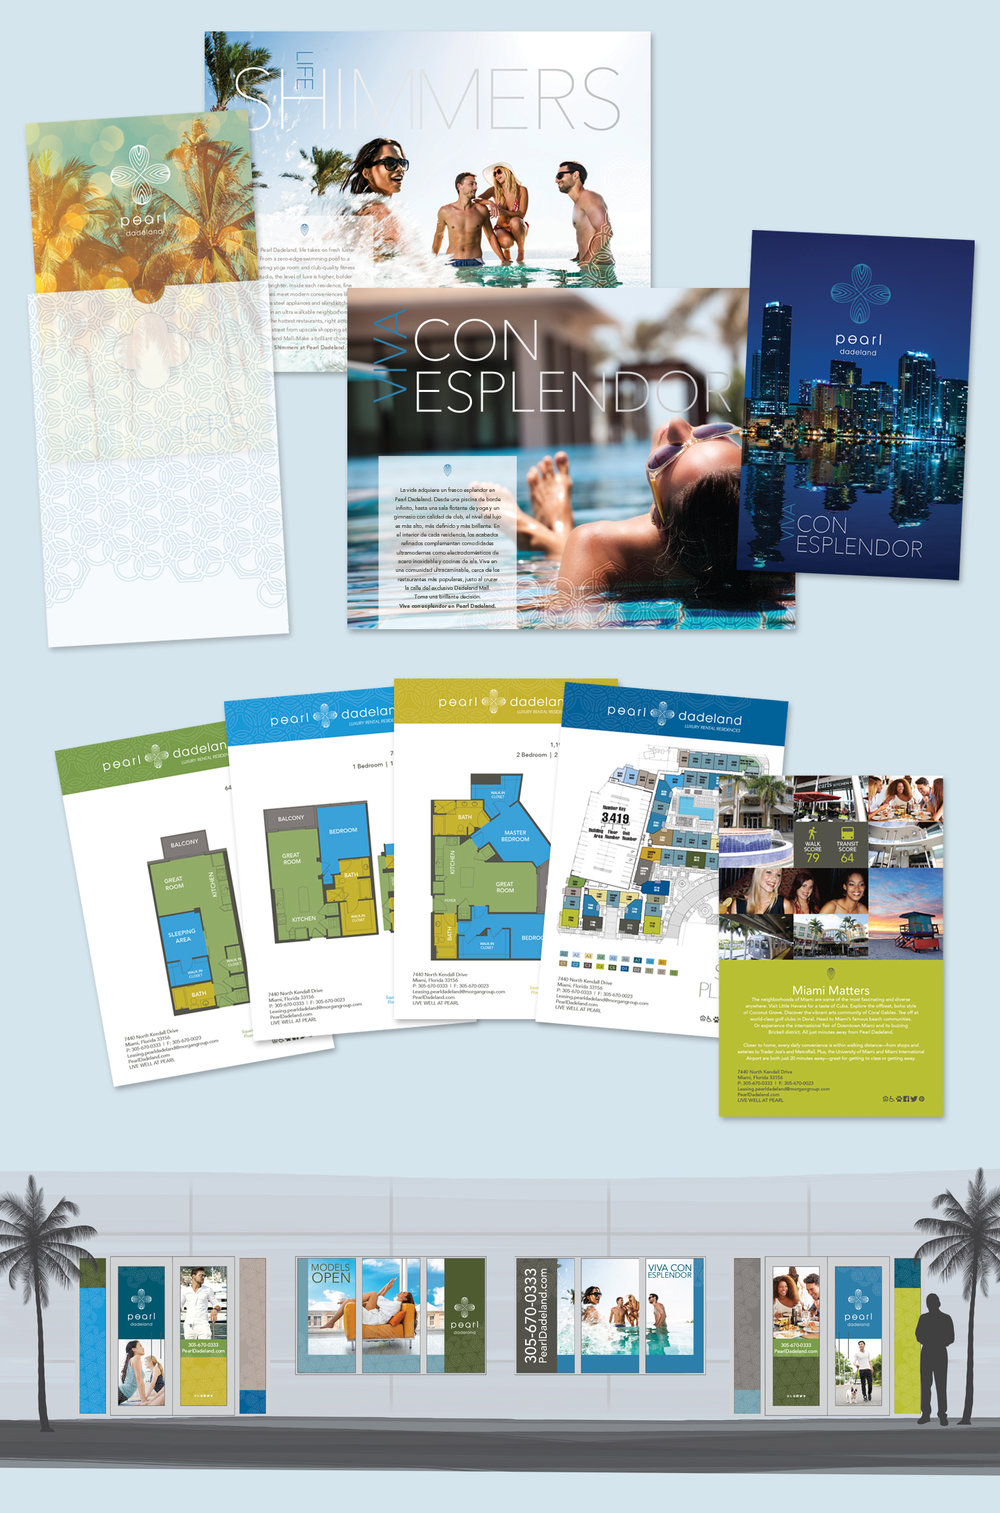 Multifamily Residential Community Brochure, Inserts, Floorplan & Sitemap, Neighborhood, Window Art